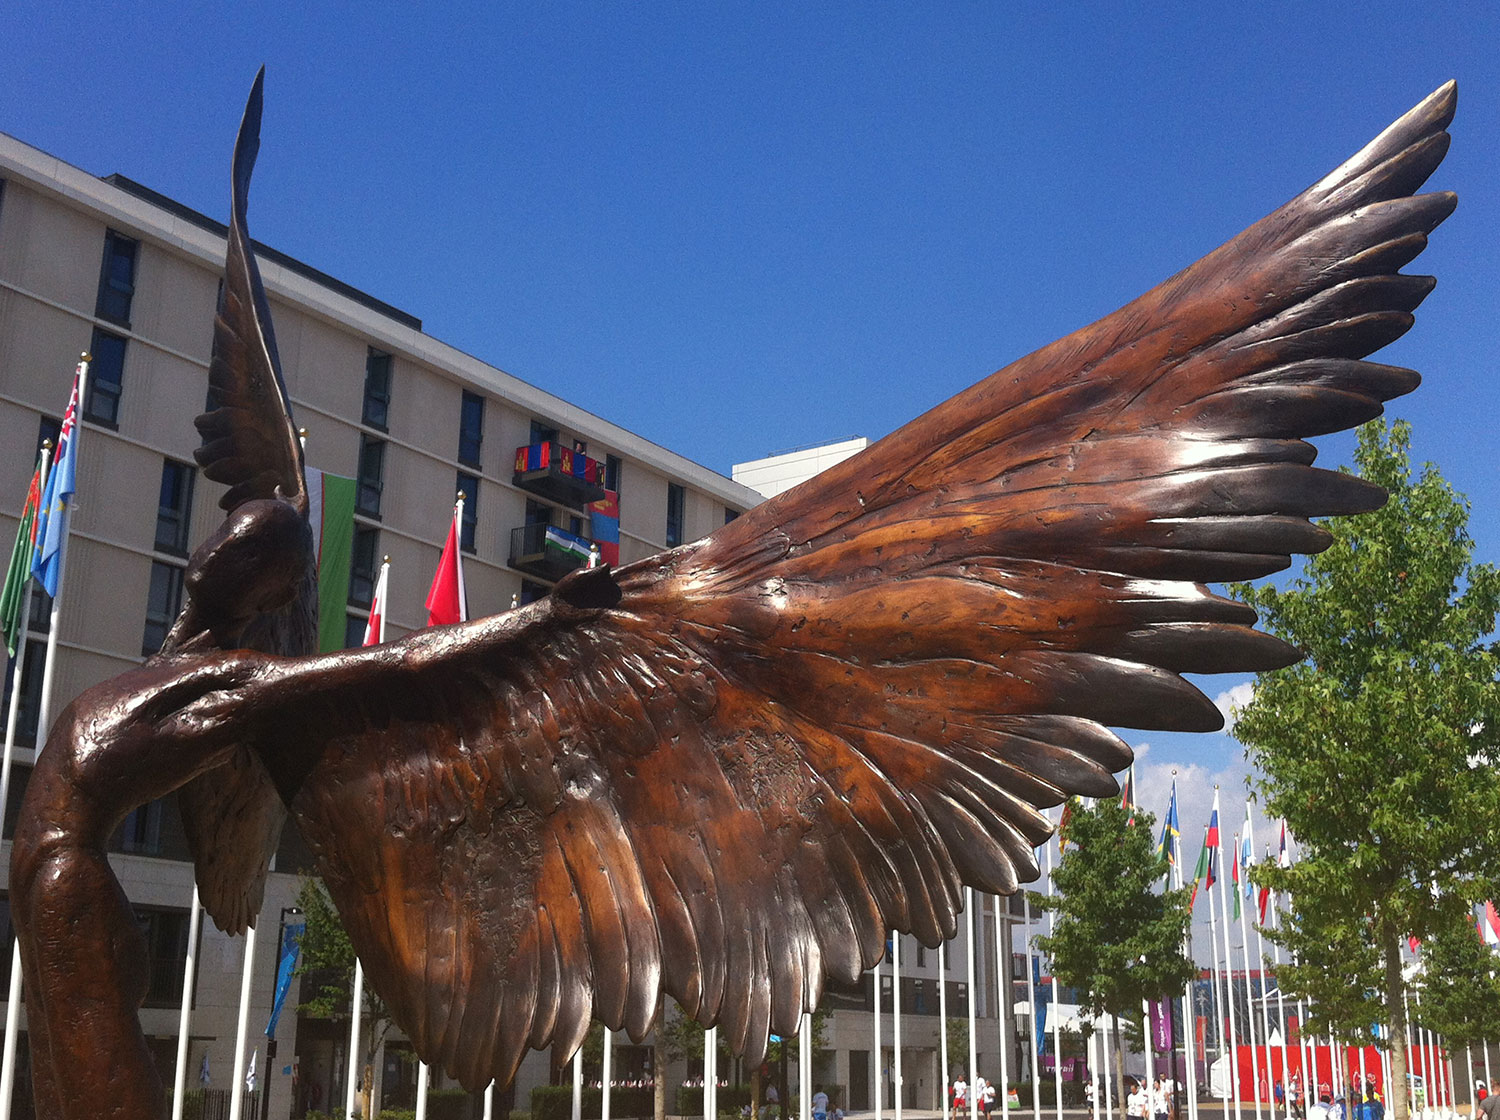 Icarus I, bronze sculpture at the London Olympic Village in 2012.